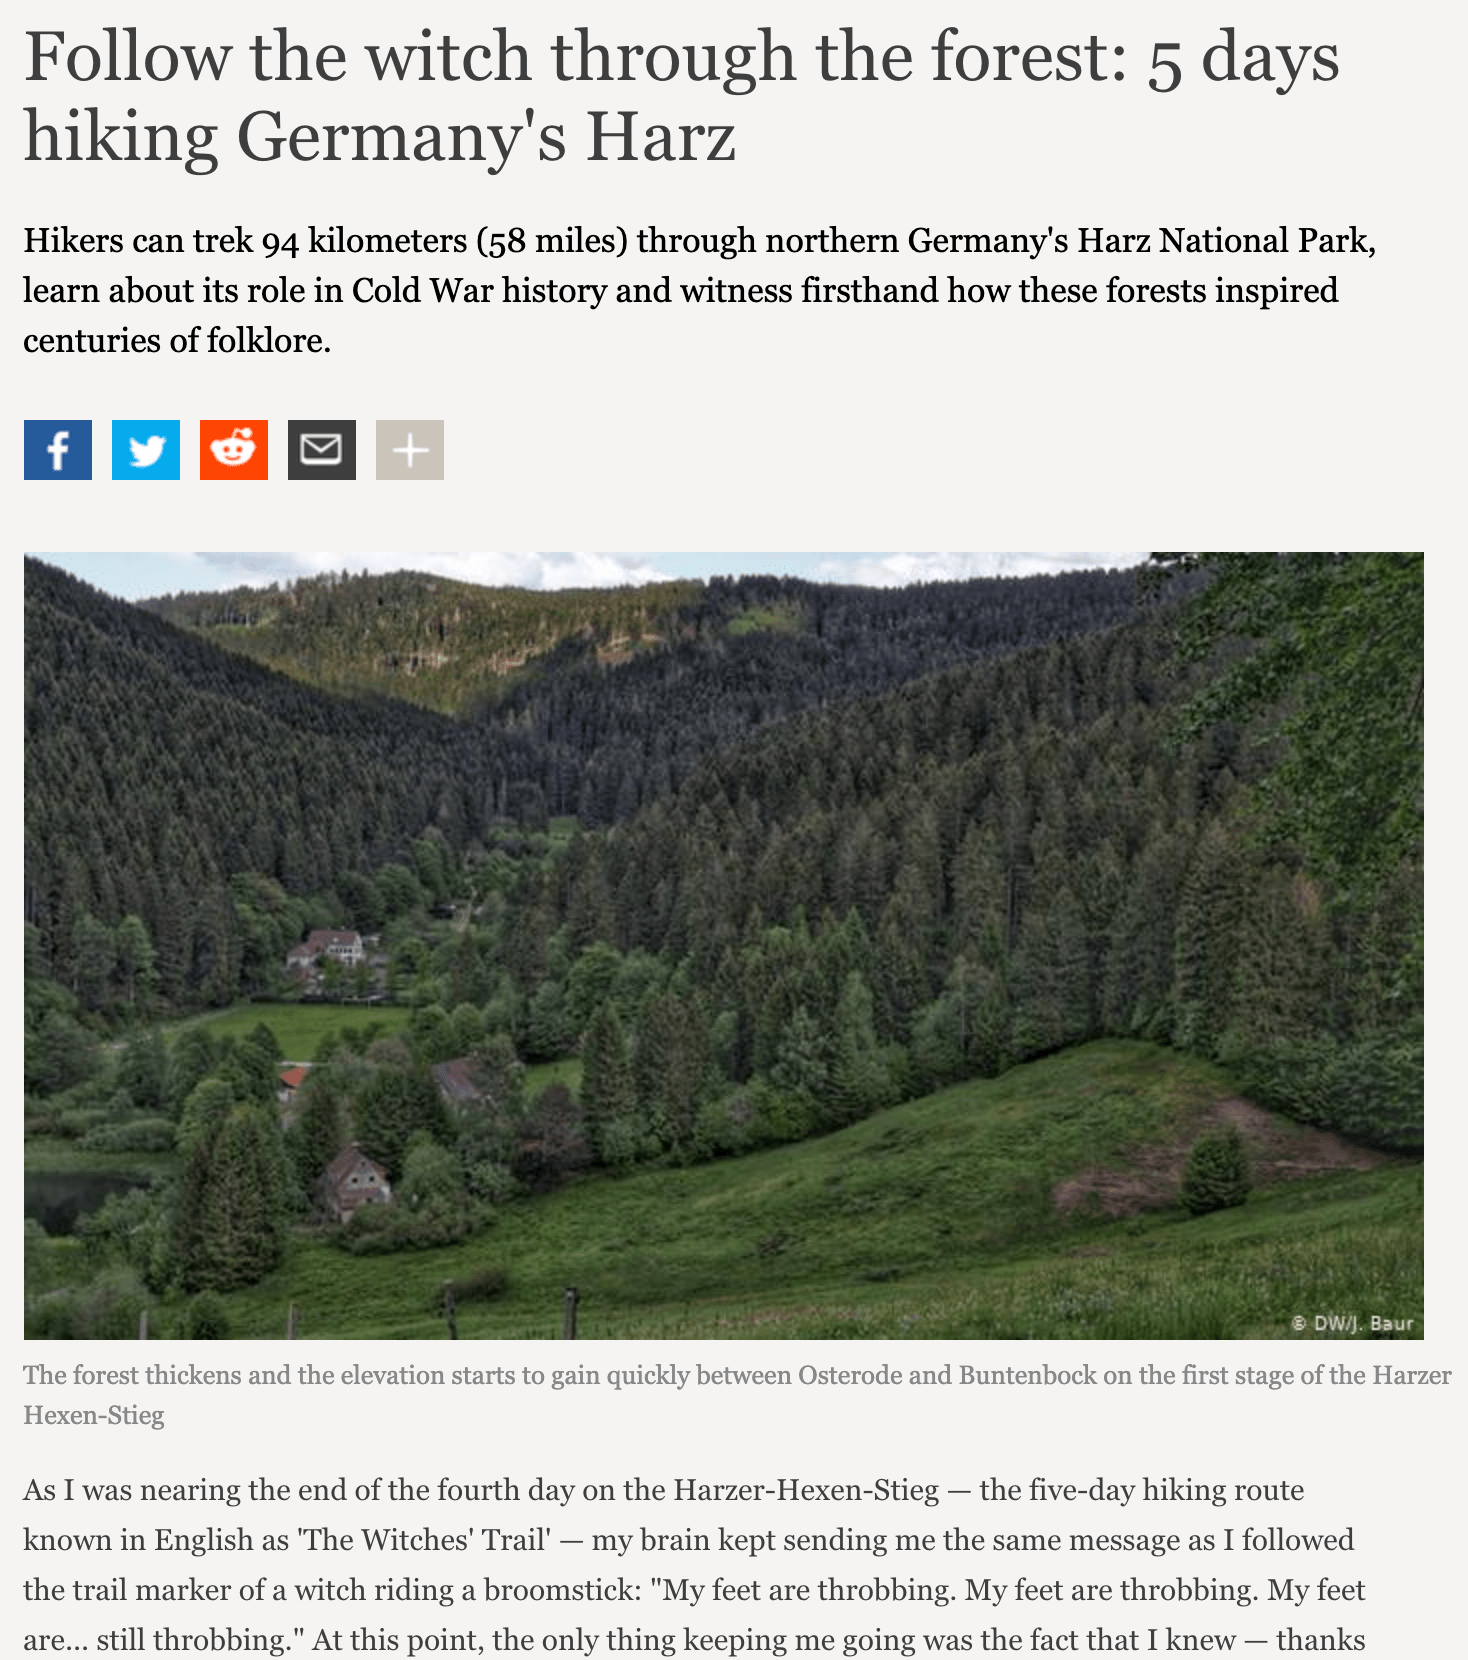 Follow the witch through the forest | 5 days hiking Germany's Harz - Deutsche Welle